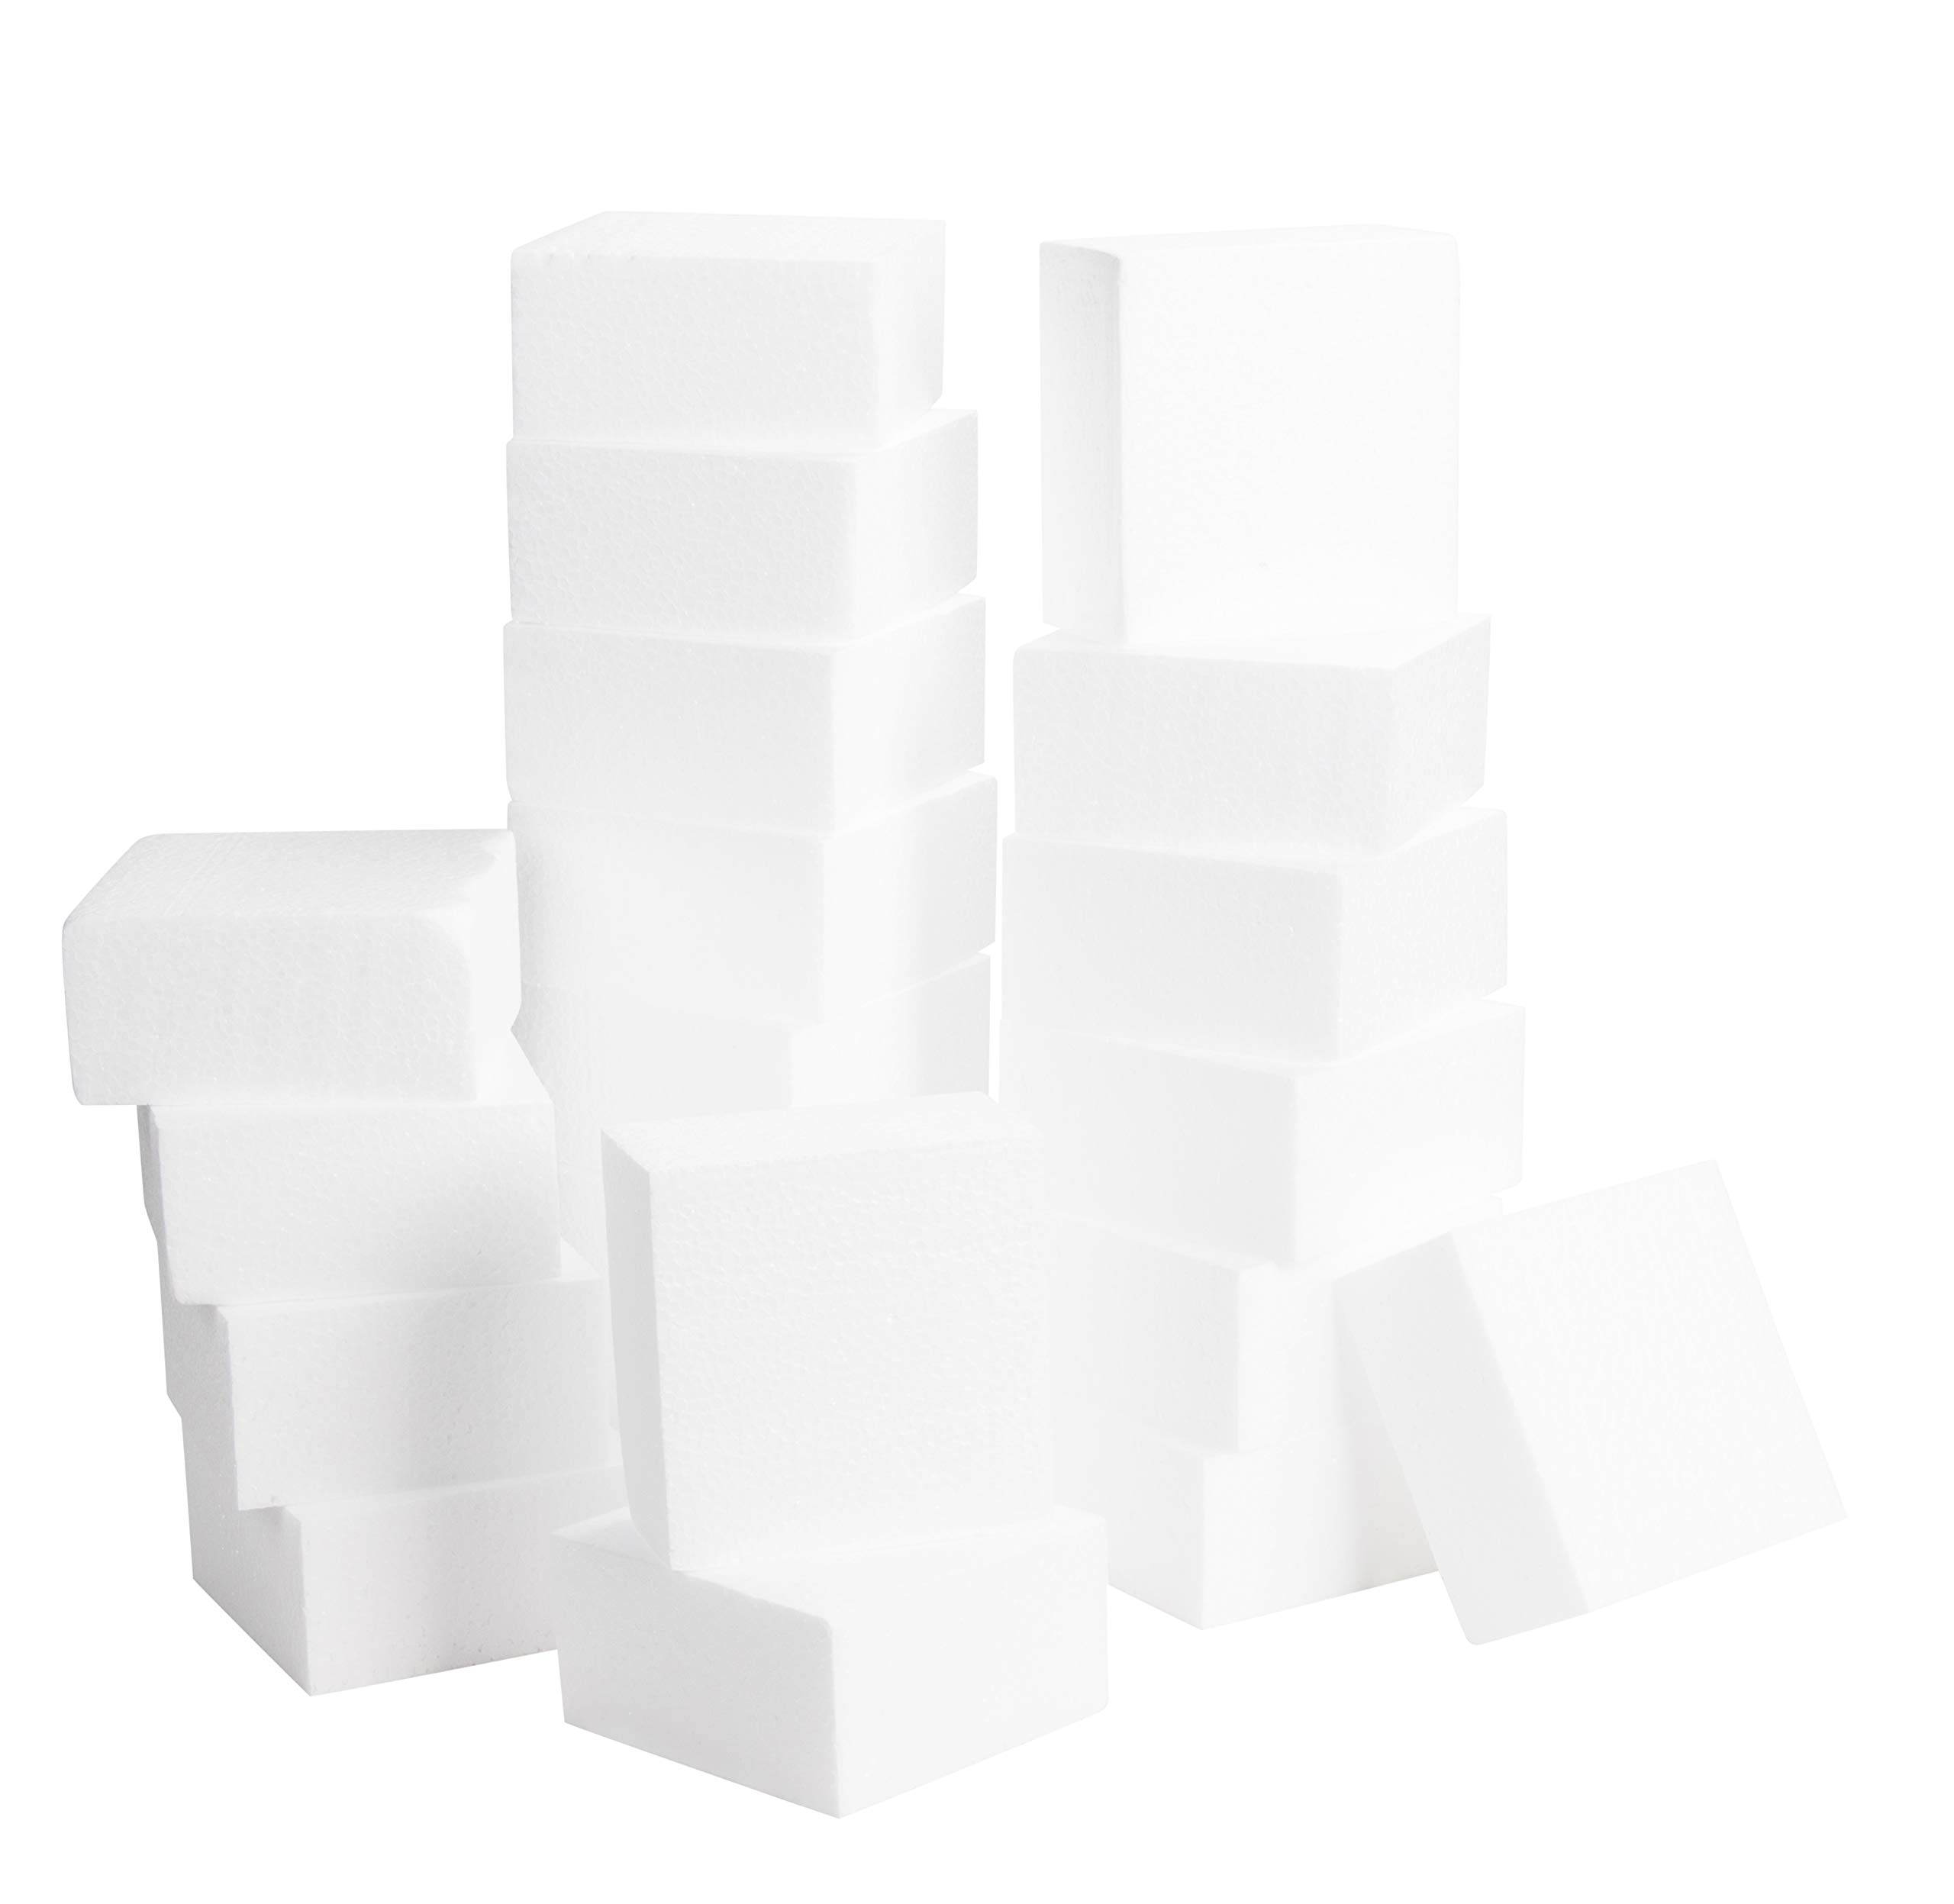 Craft Foam Block - 20-Pack Polystyrene Foam Square, Smooth Craft Bricks, Rectangle Faoms, for Sculpture, Modeling, DIY Arts and Crafts, Kids Class, Floral Arrangement, 4 x 4 x 2 Inches